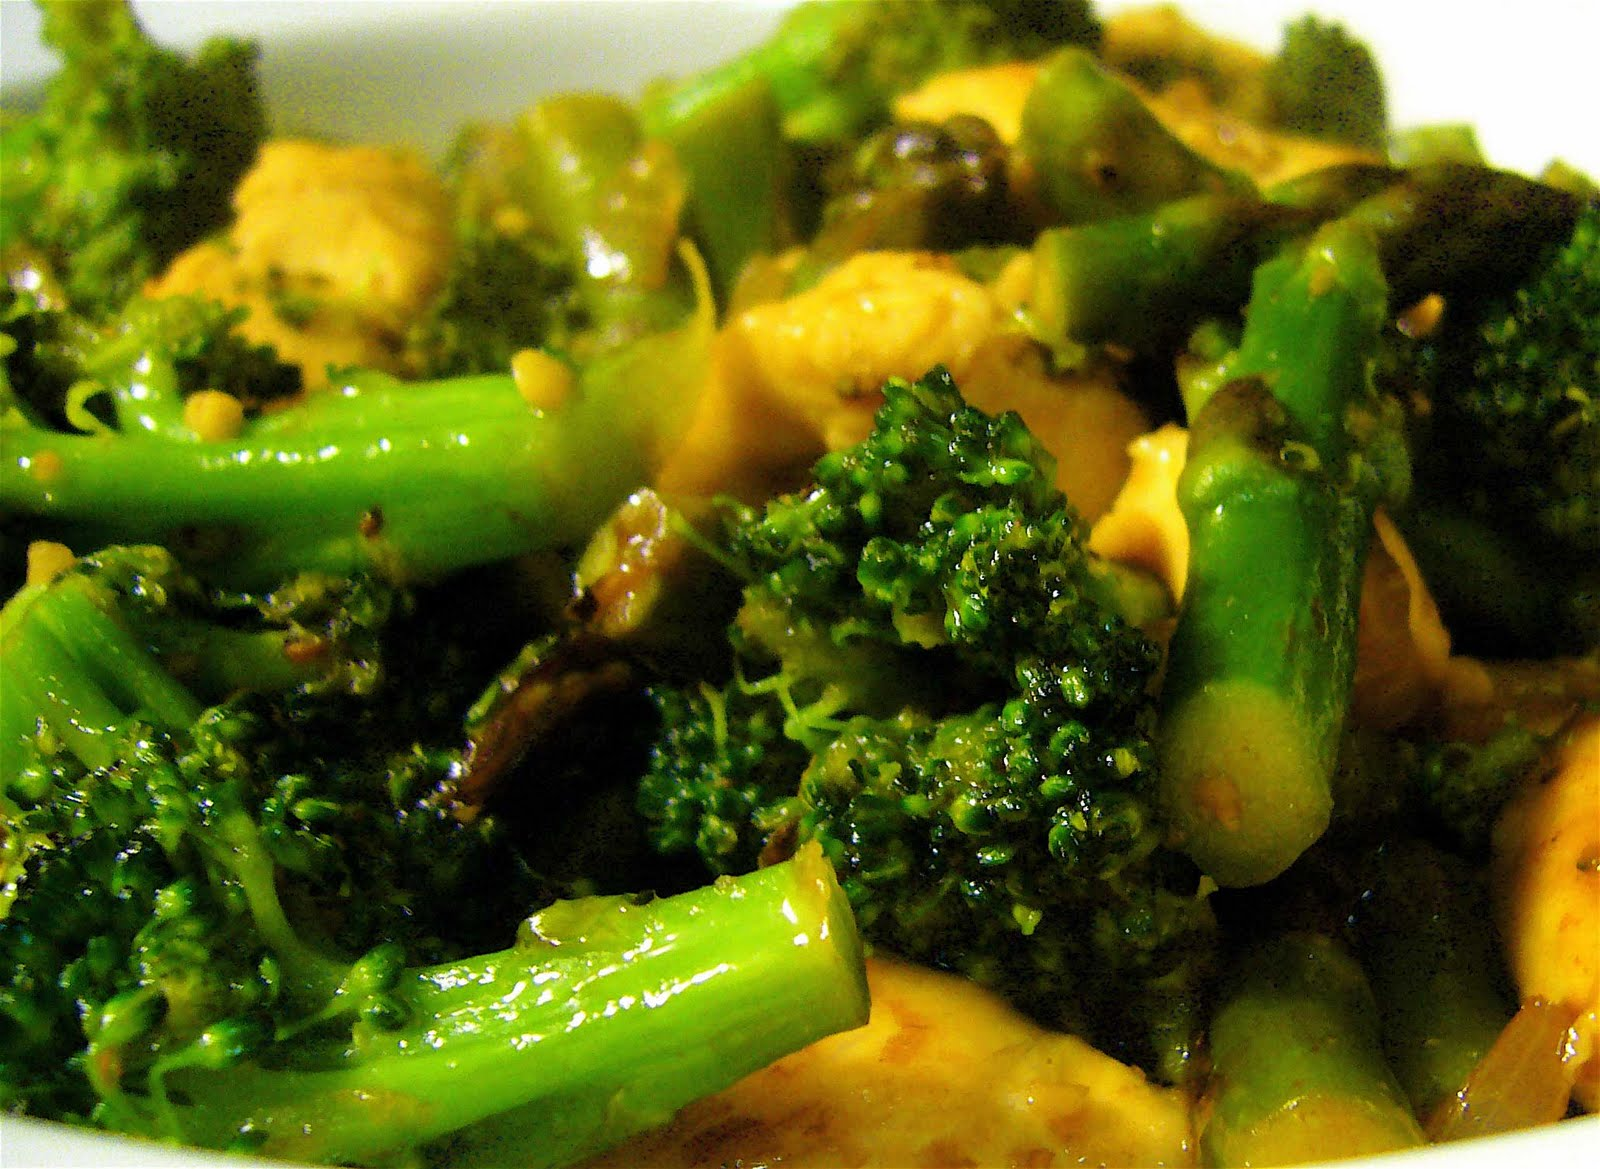 Bon Chappétit: chicken, asparagus & broccoli stir-fry